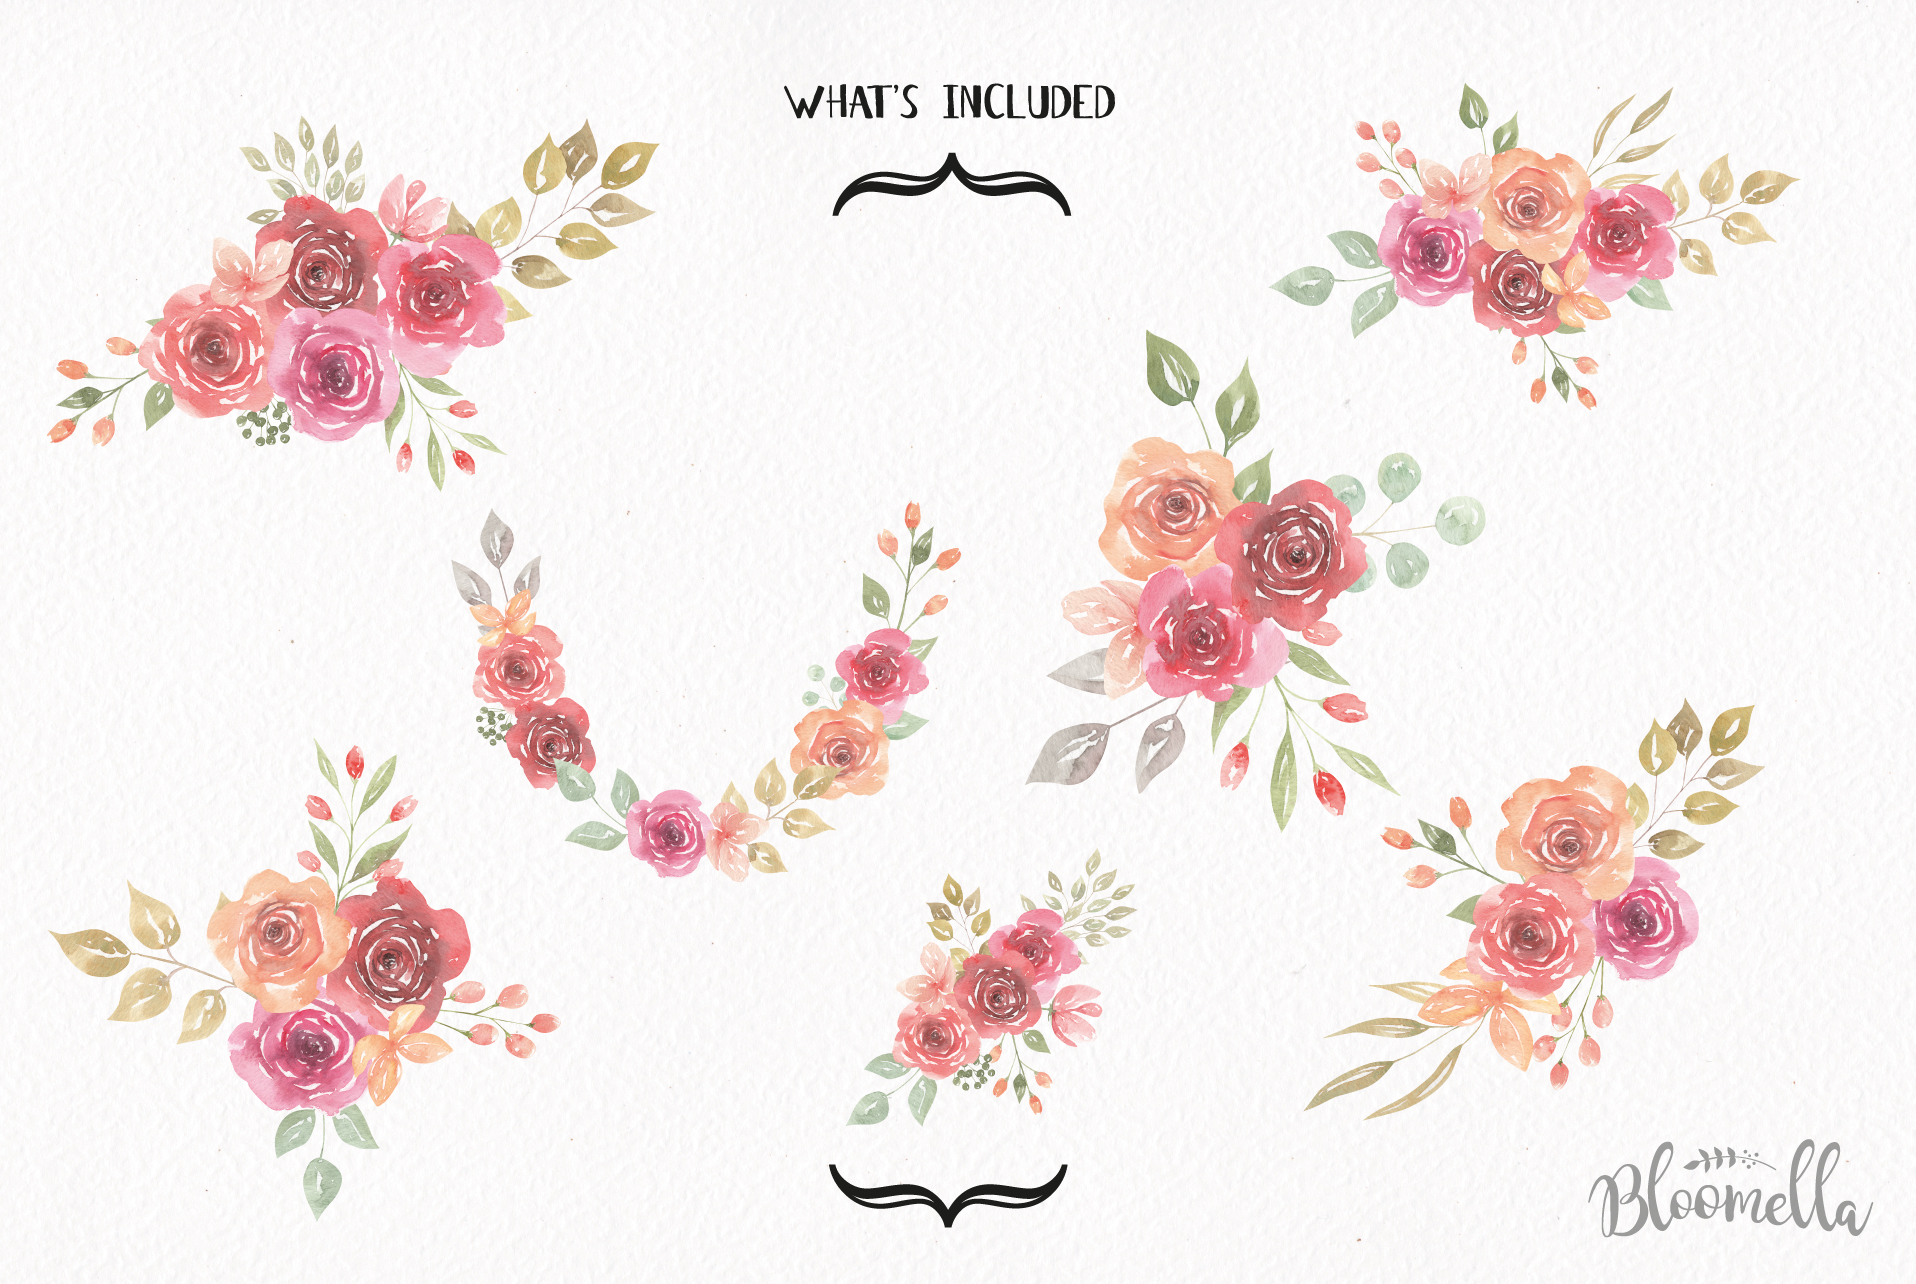 Watercolor Floral Delicate Wreaths 7 Bouquets Pretty Flower example image 5